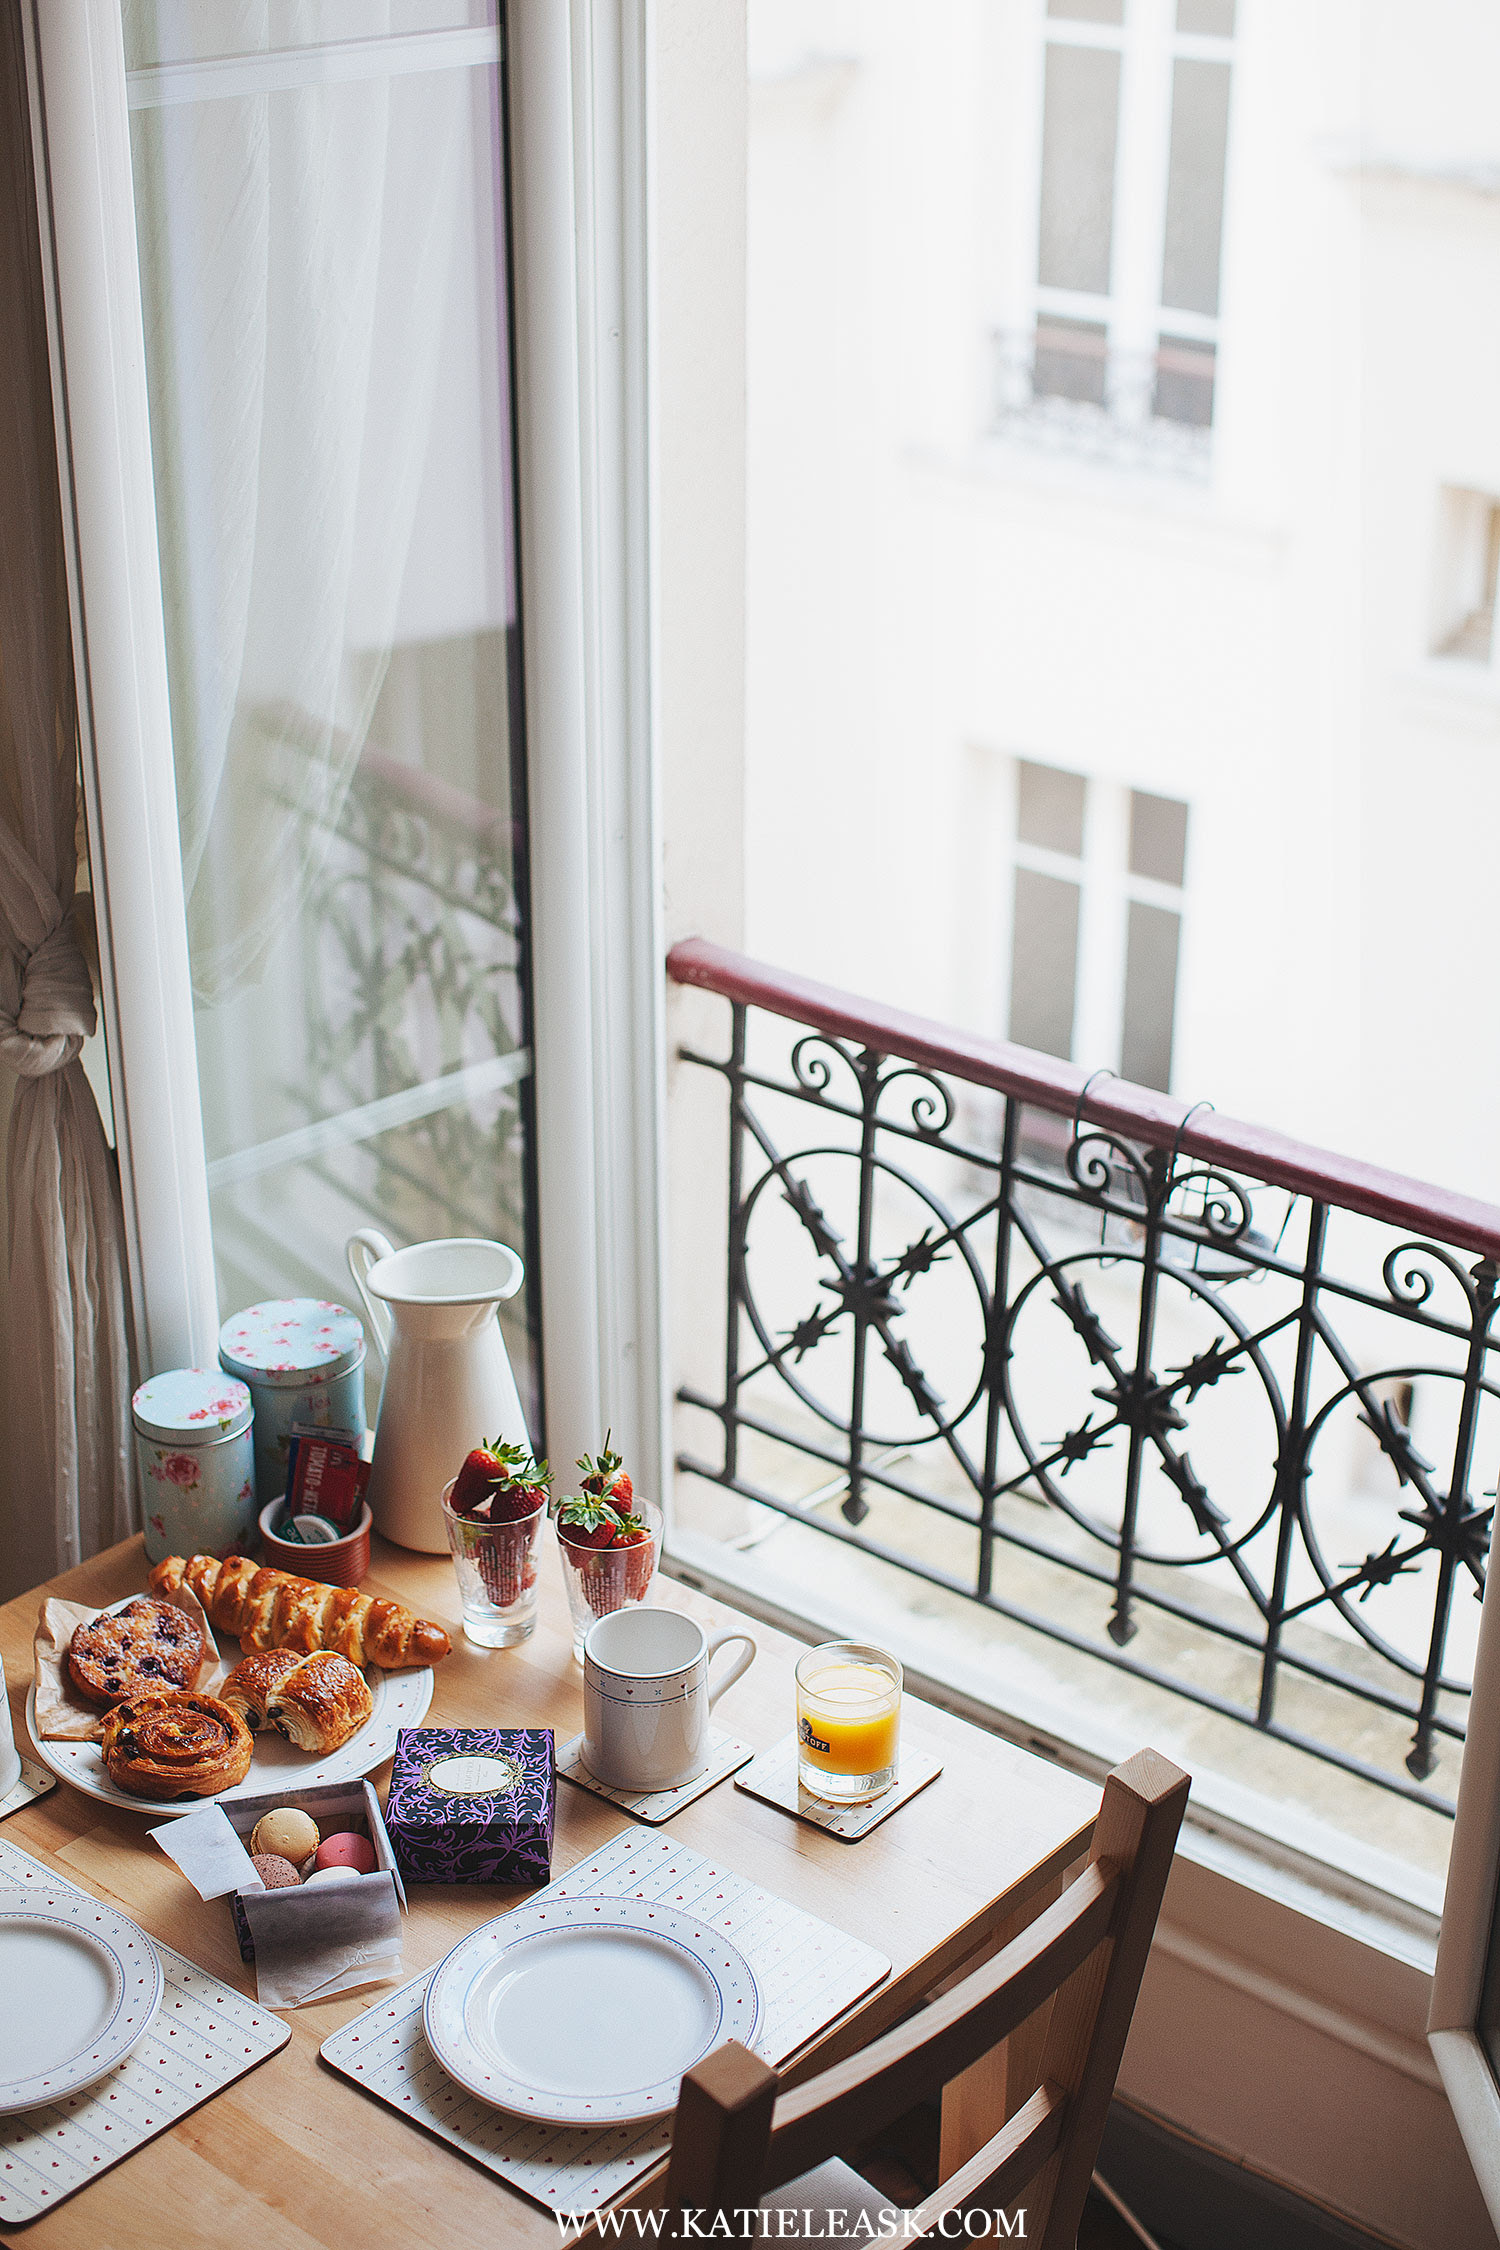 Continental-Breakfast---Katie-Leask-Photography-002-S